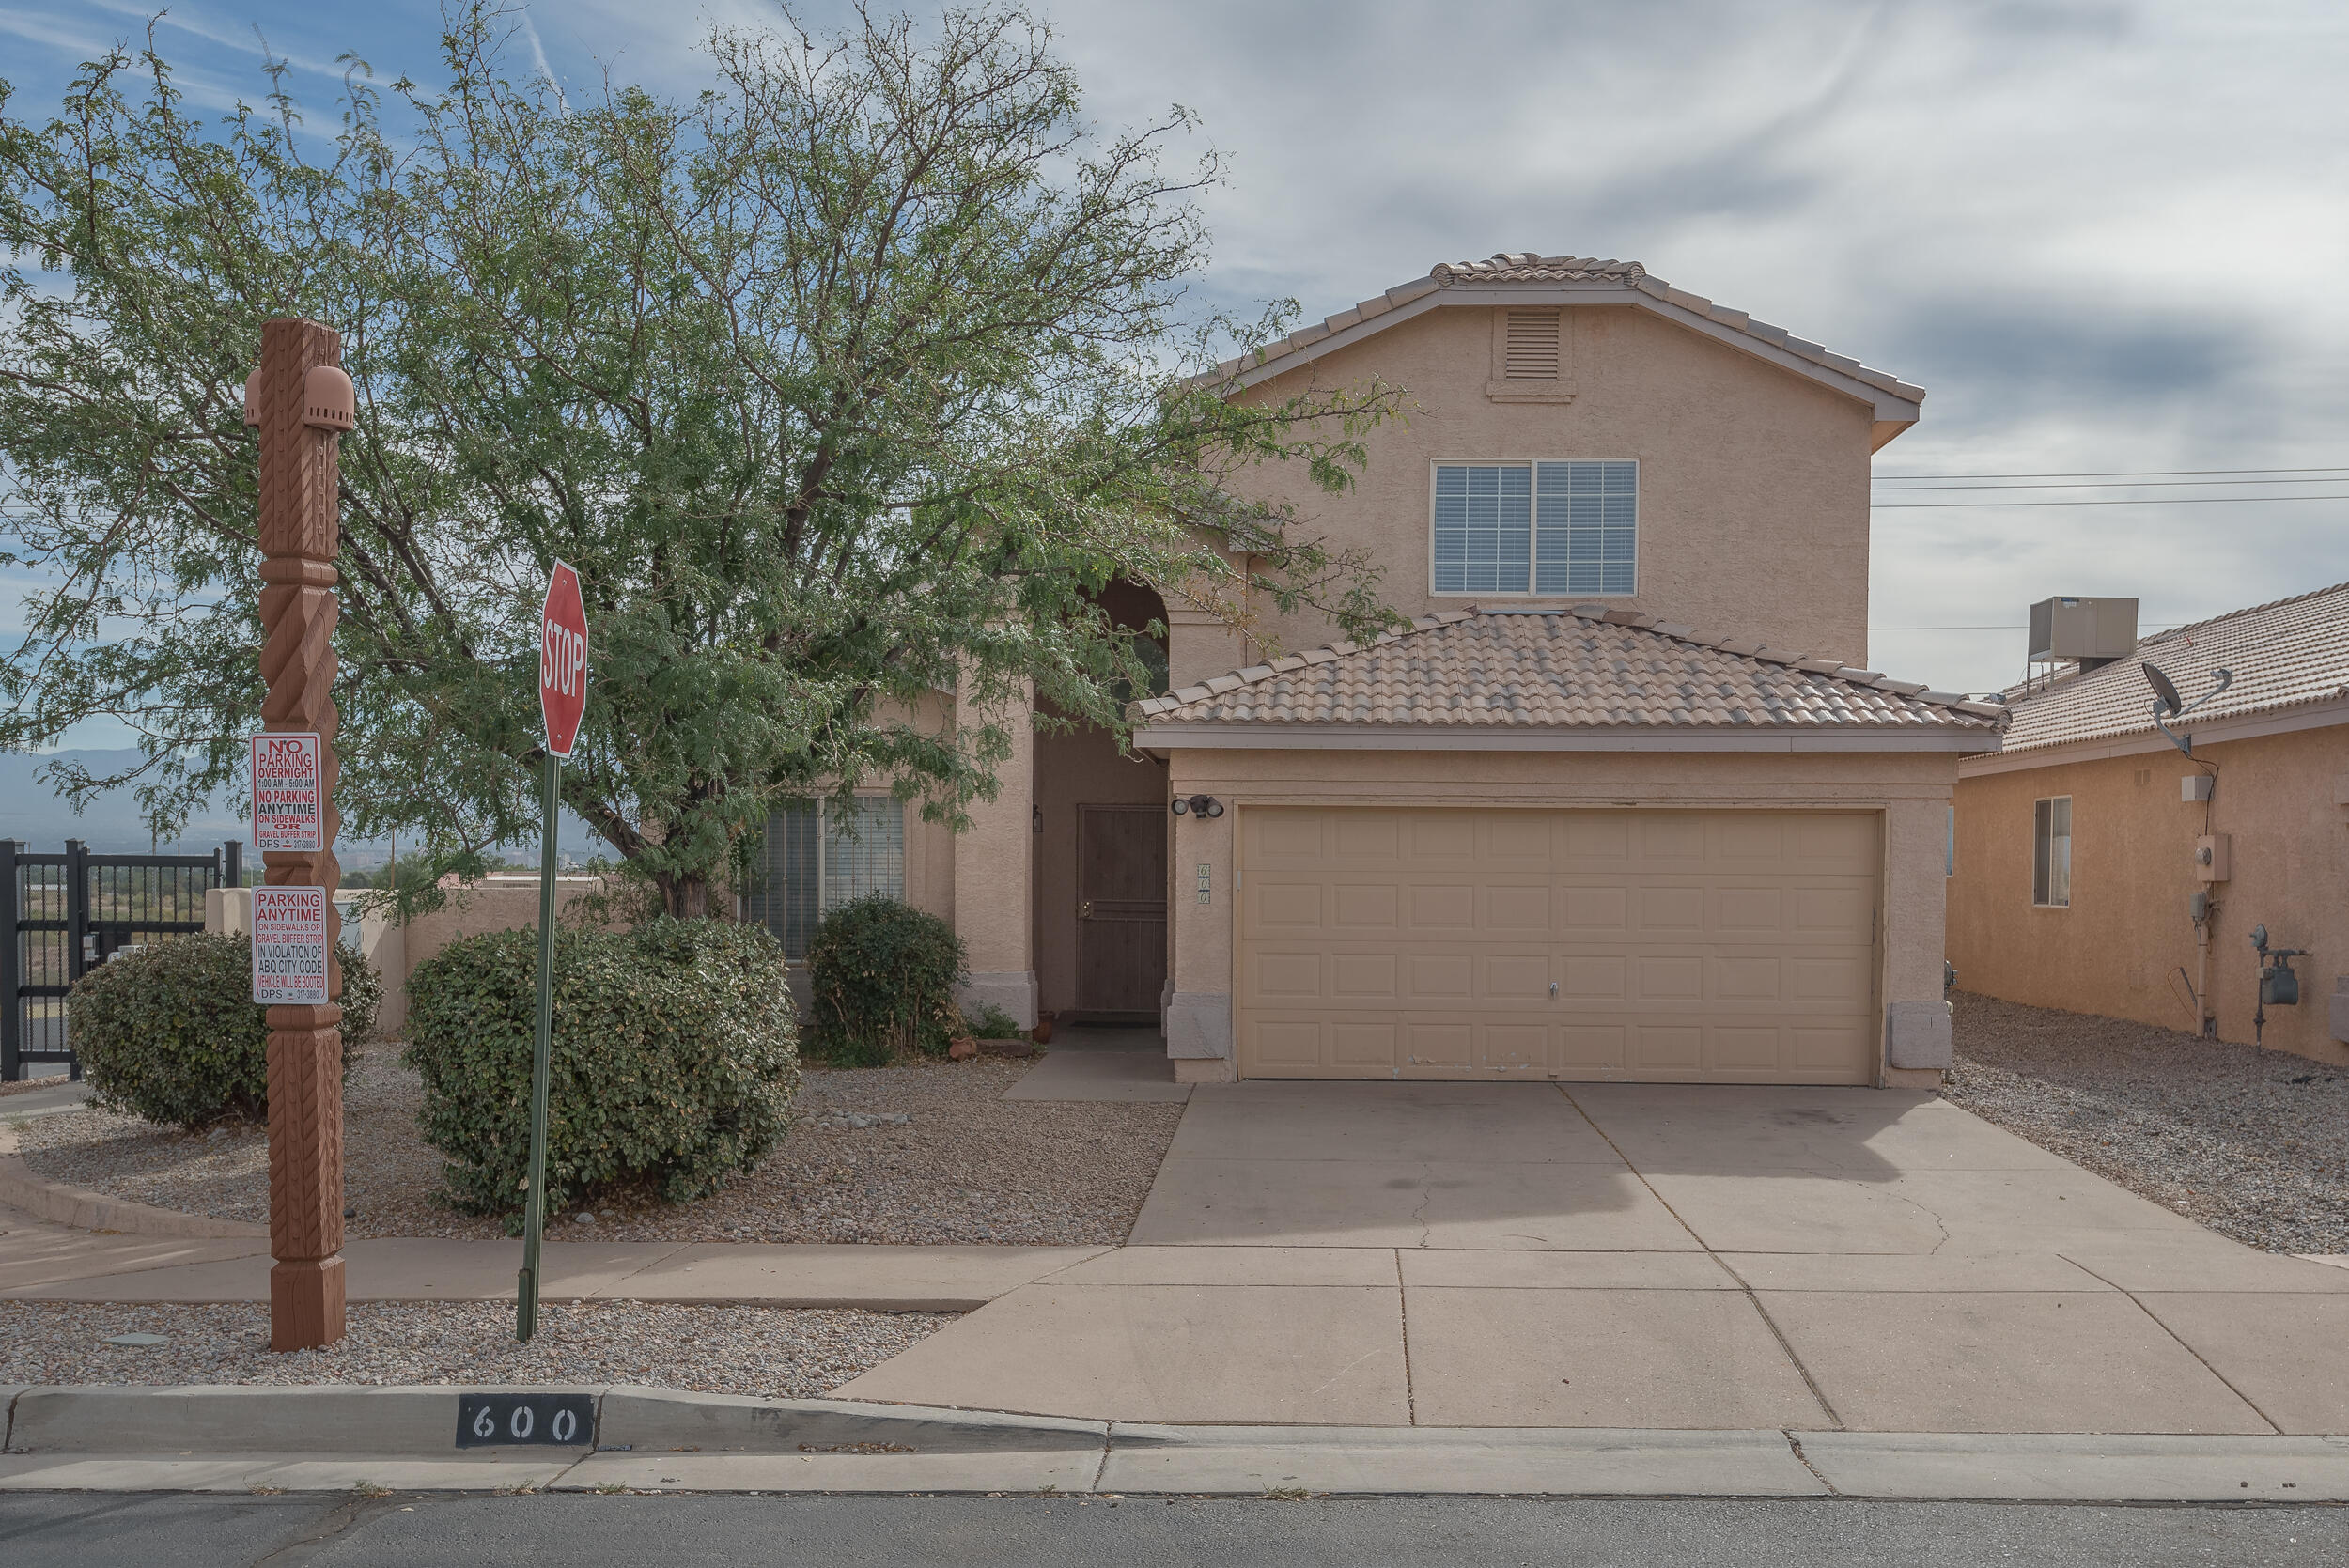 Come see this beautiful 3 bedroom, 2 bath, 2 car garage with a oversized loft and huge master bedroom by DR Horton located in the desirable Encanto Village gated community! This home has updates throughout, fresh paint and great city/ mountain views. This is one you don't want to miss!!